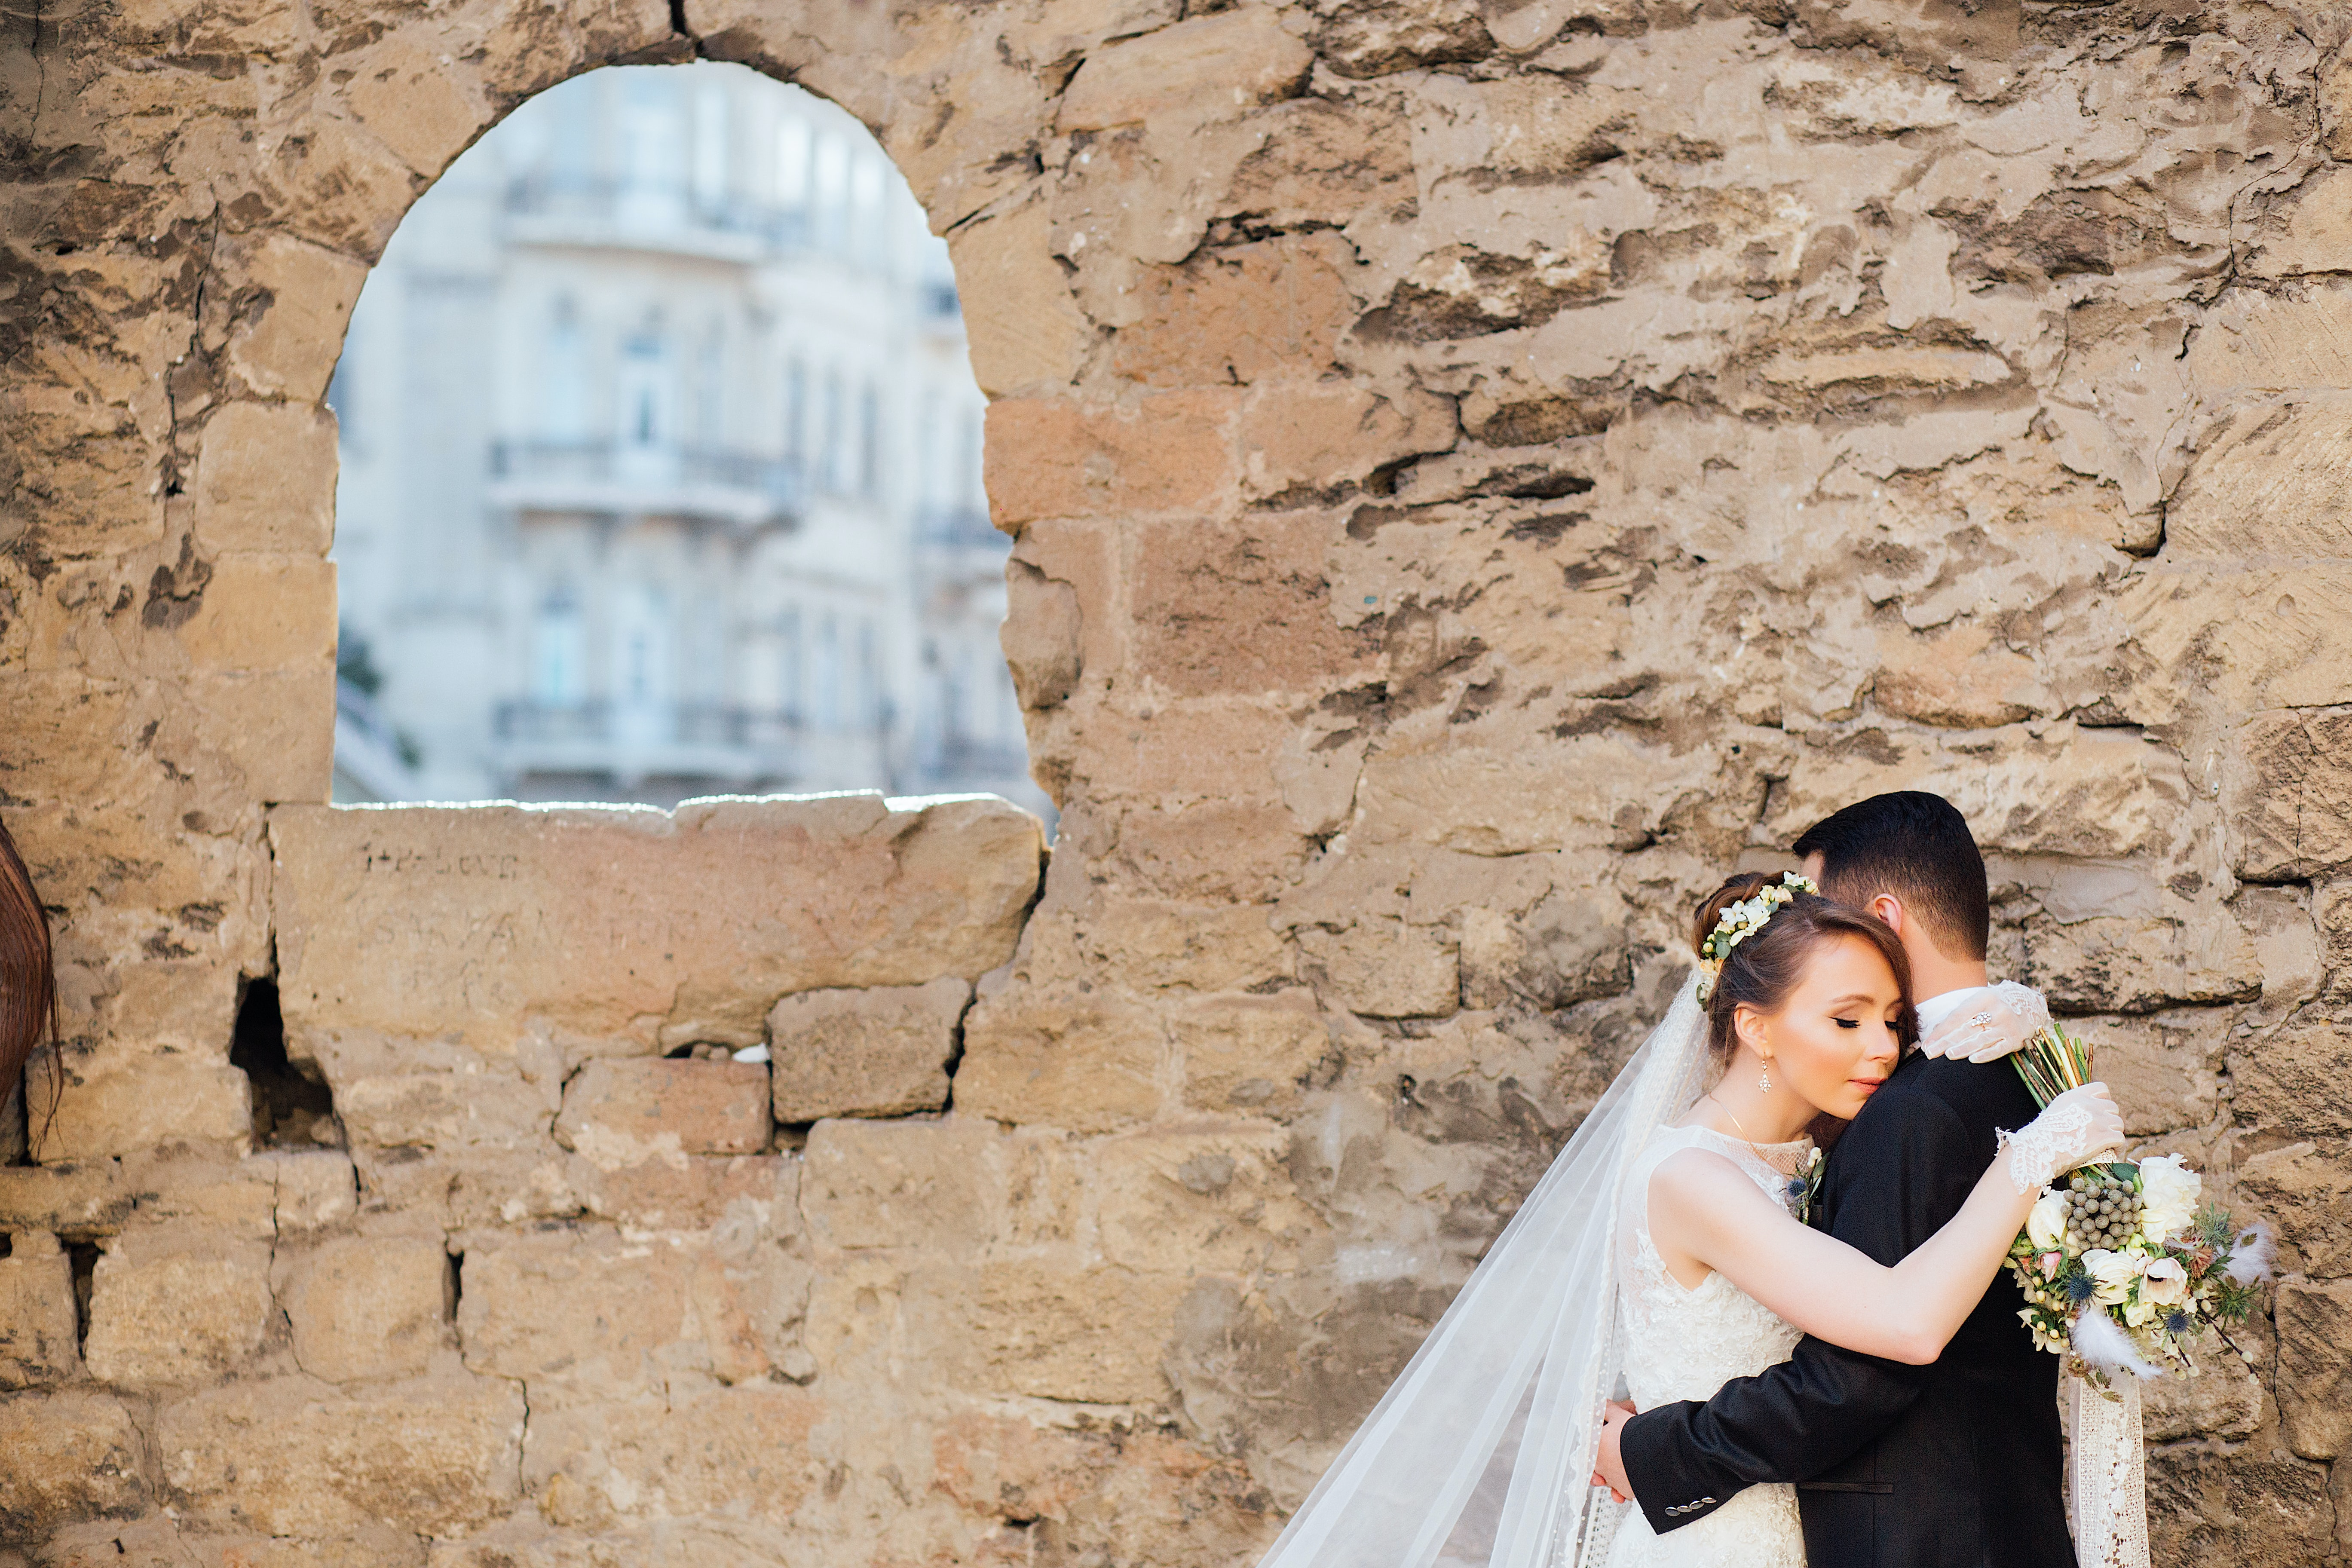 A married couple embraces below a window in a stone wall on their wedding day